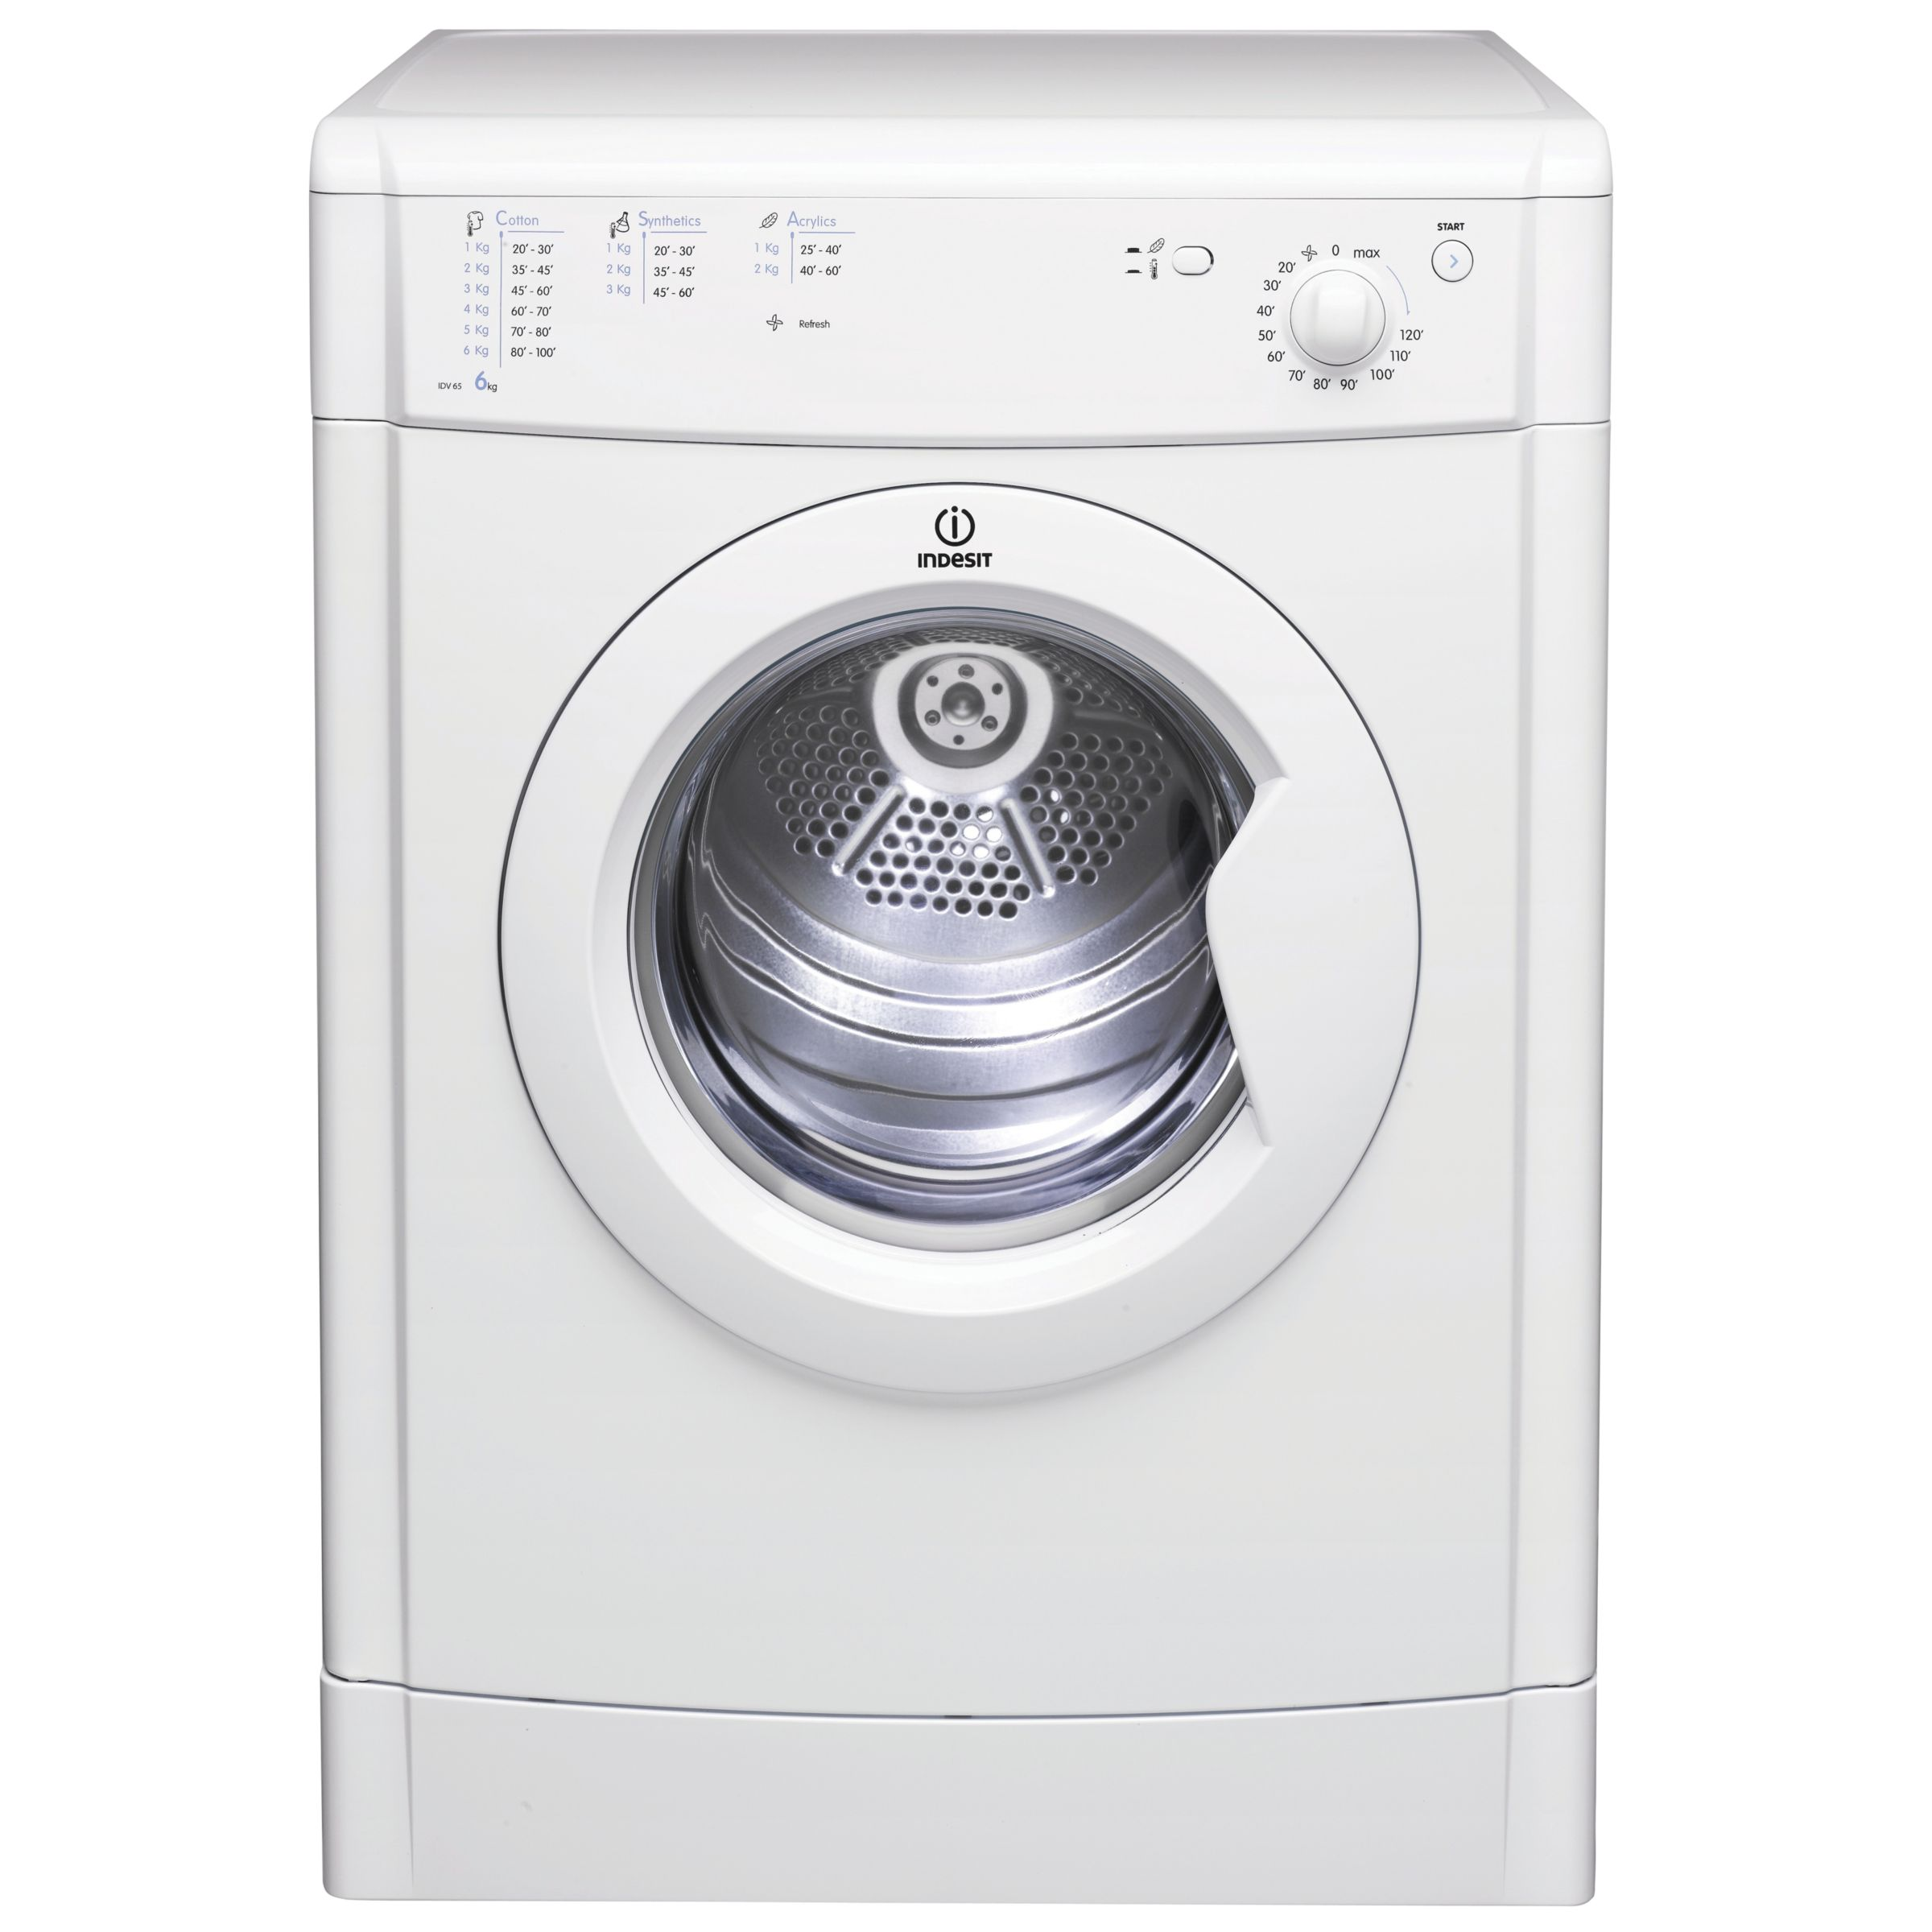 Indesit IDV65 Vented Tumble Dryer, White at John Lewis